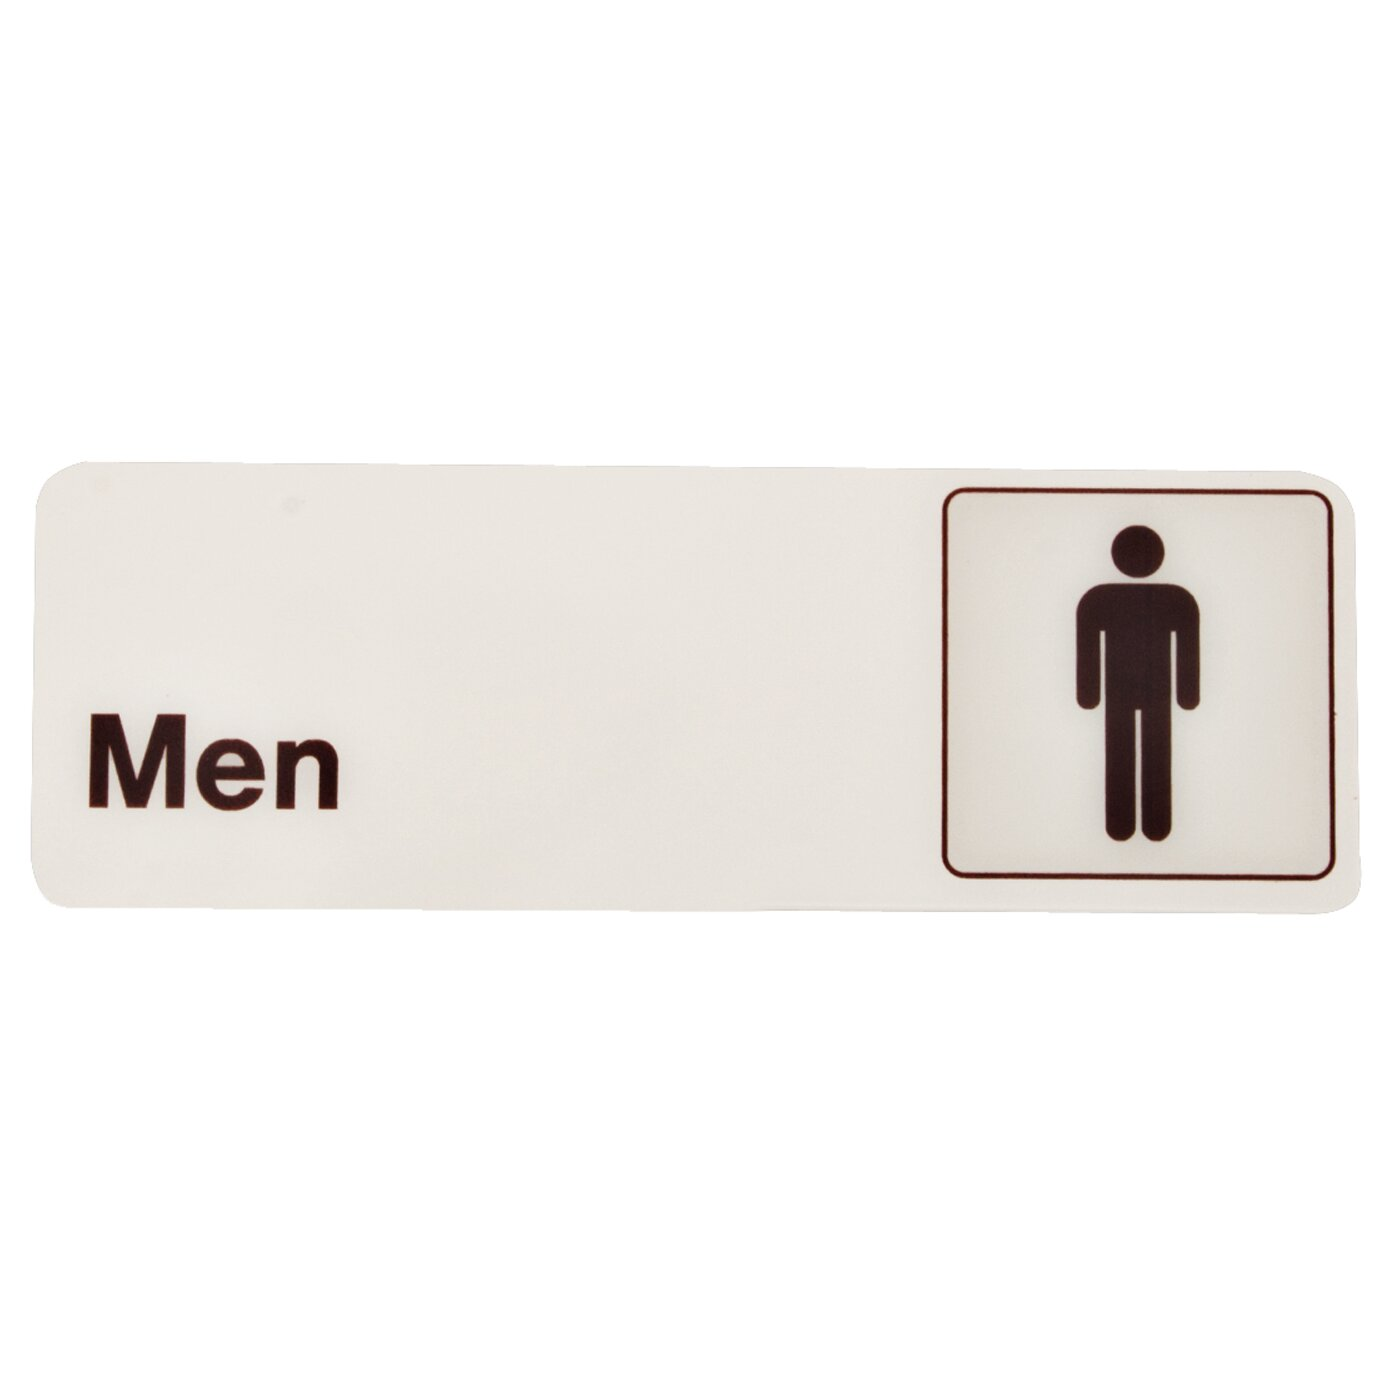 Men Bathroom Sign Wayfair